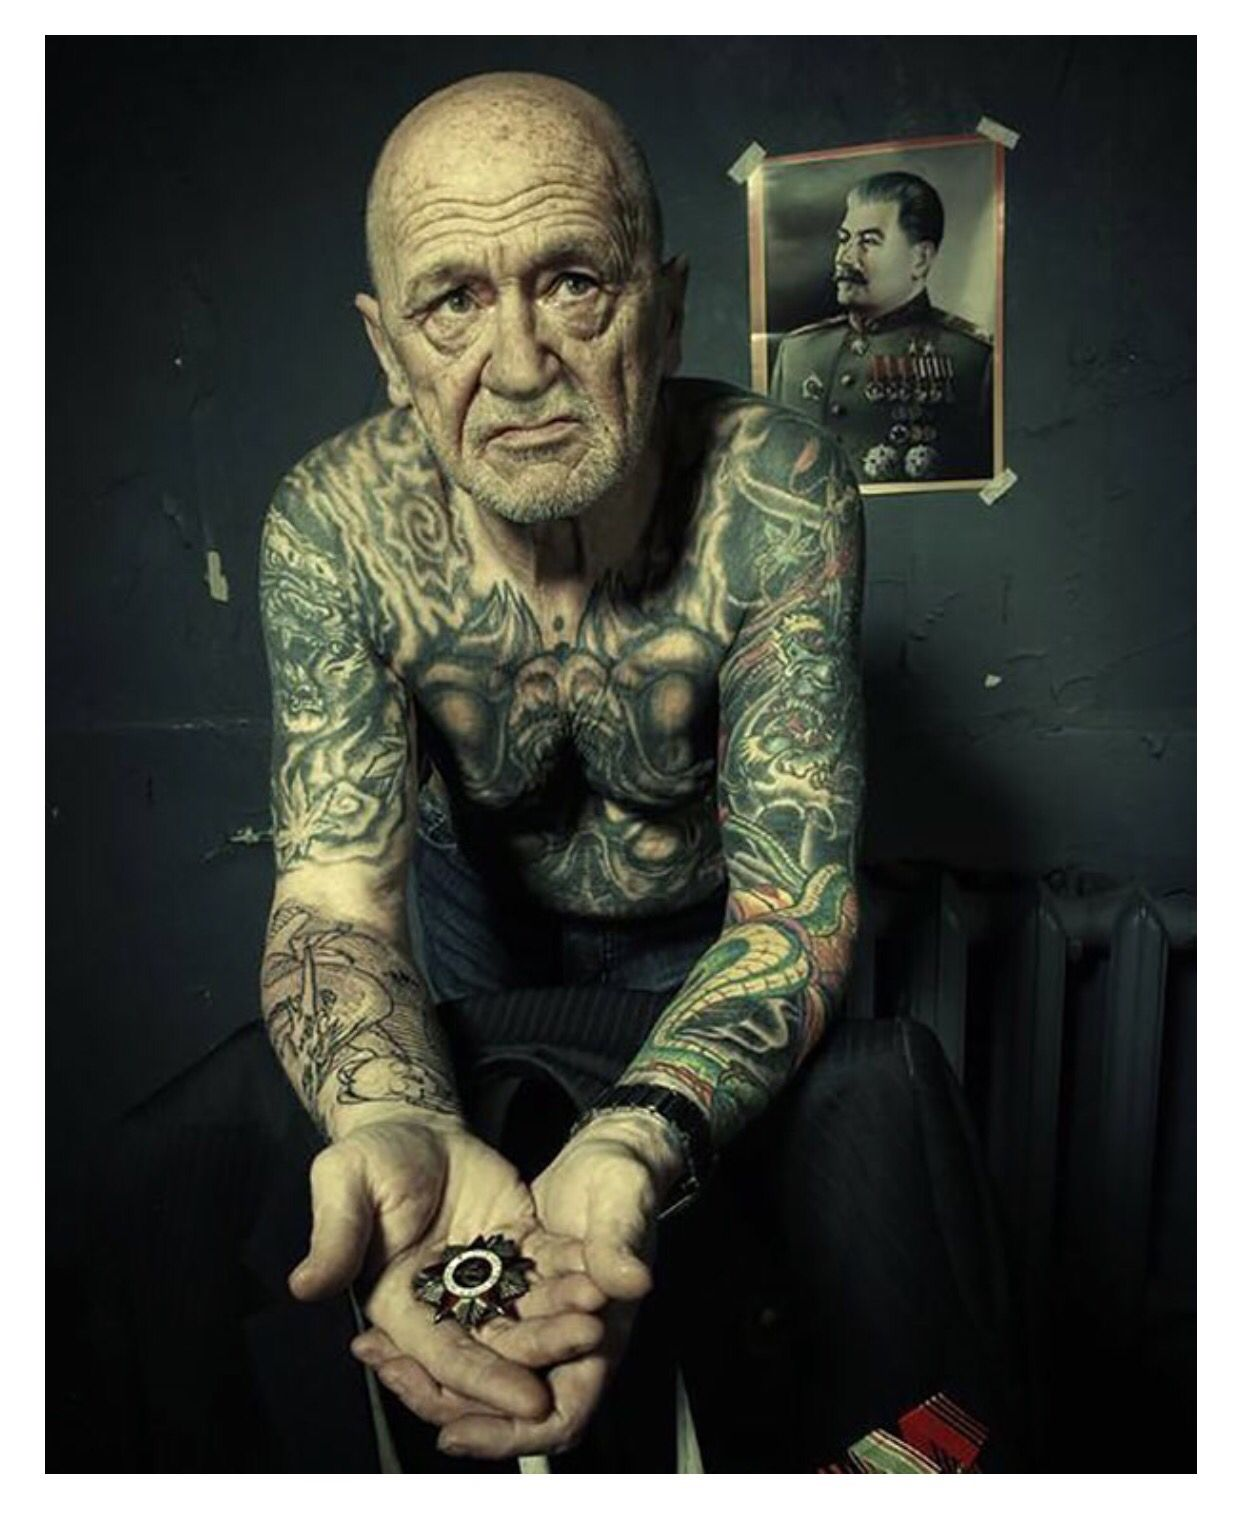 26c8c2628 Serio Old Man With Tattoos, Old Tattoos, Badass Tattoos, Tattoos For Guys,